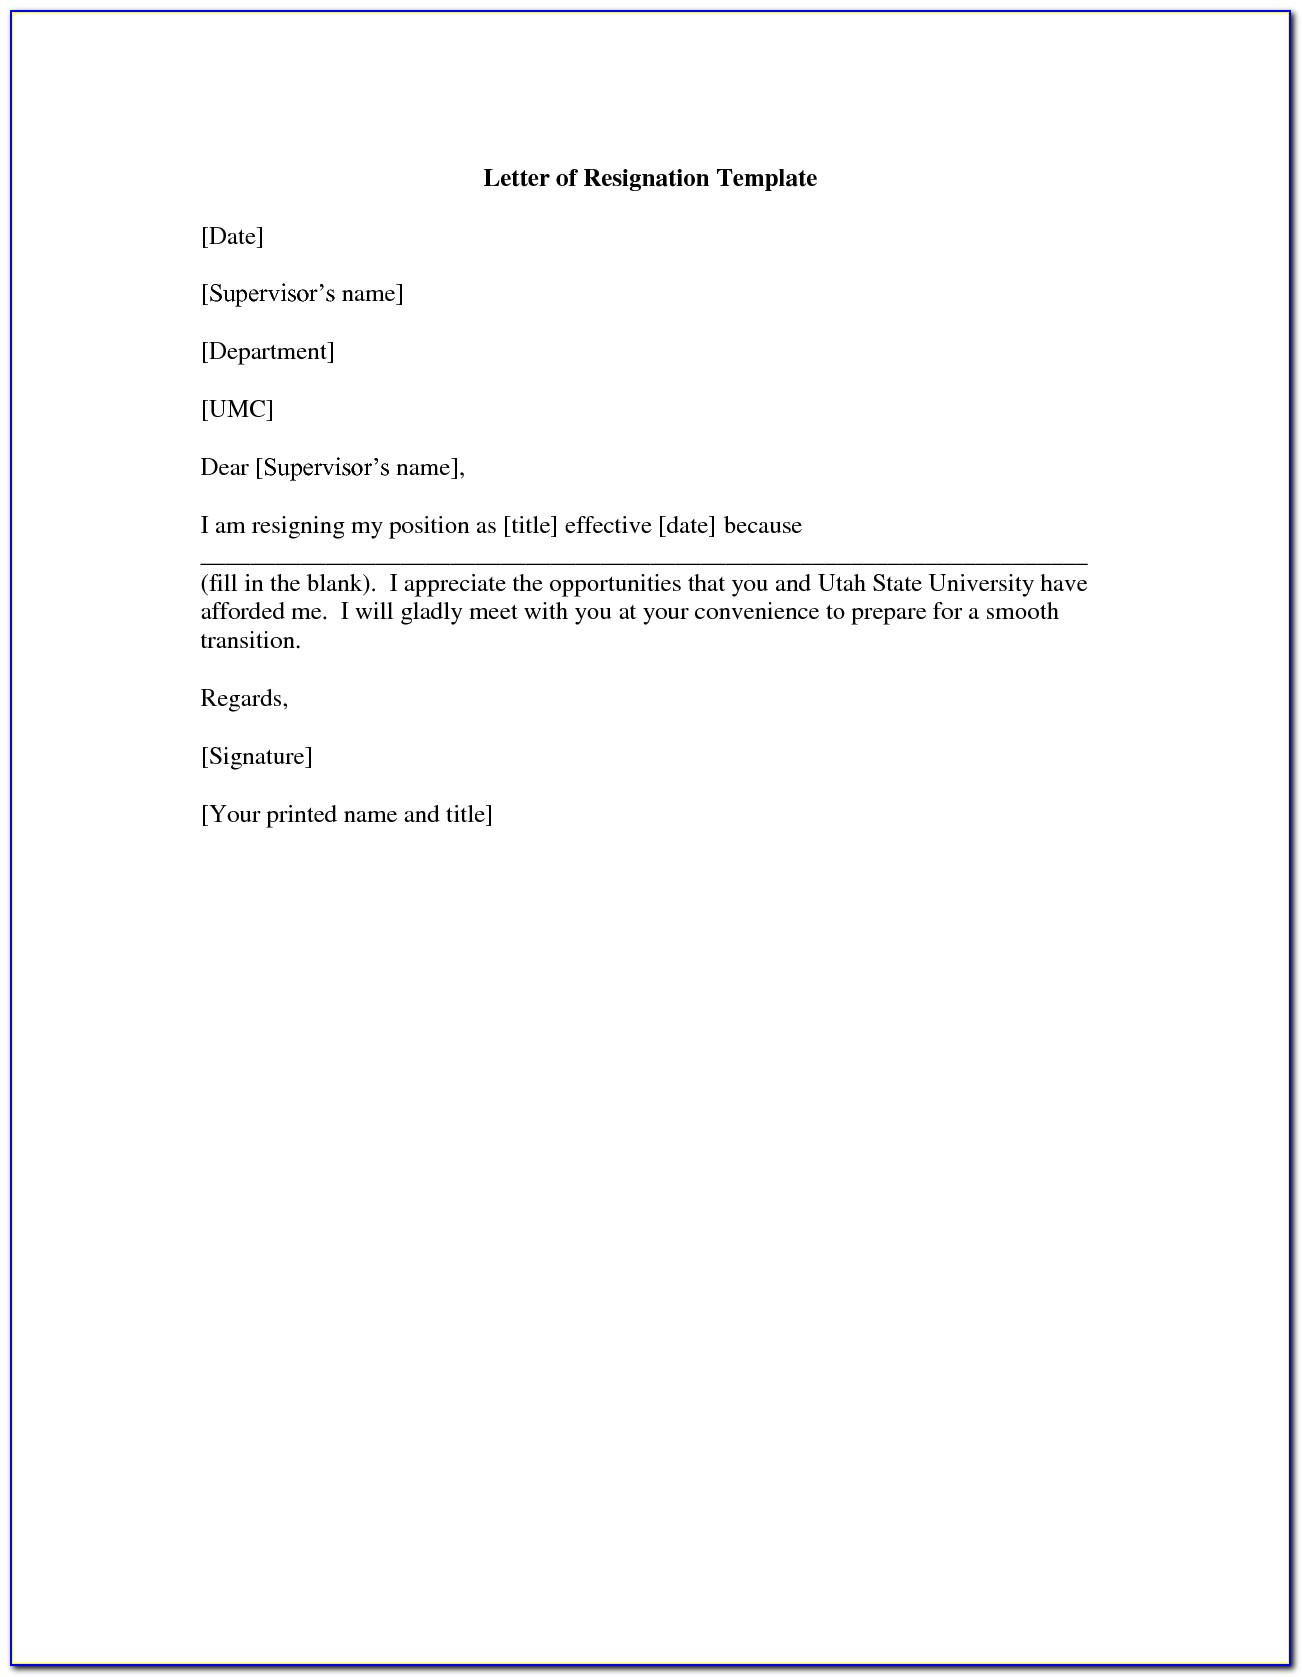 Law School Letter Of Recommendation Template From Employer